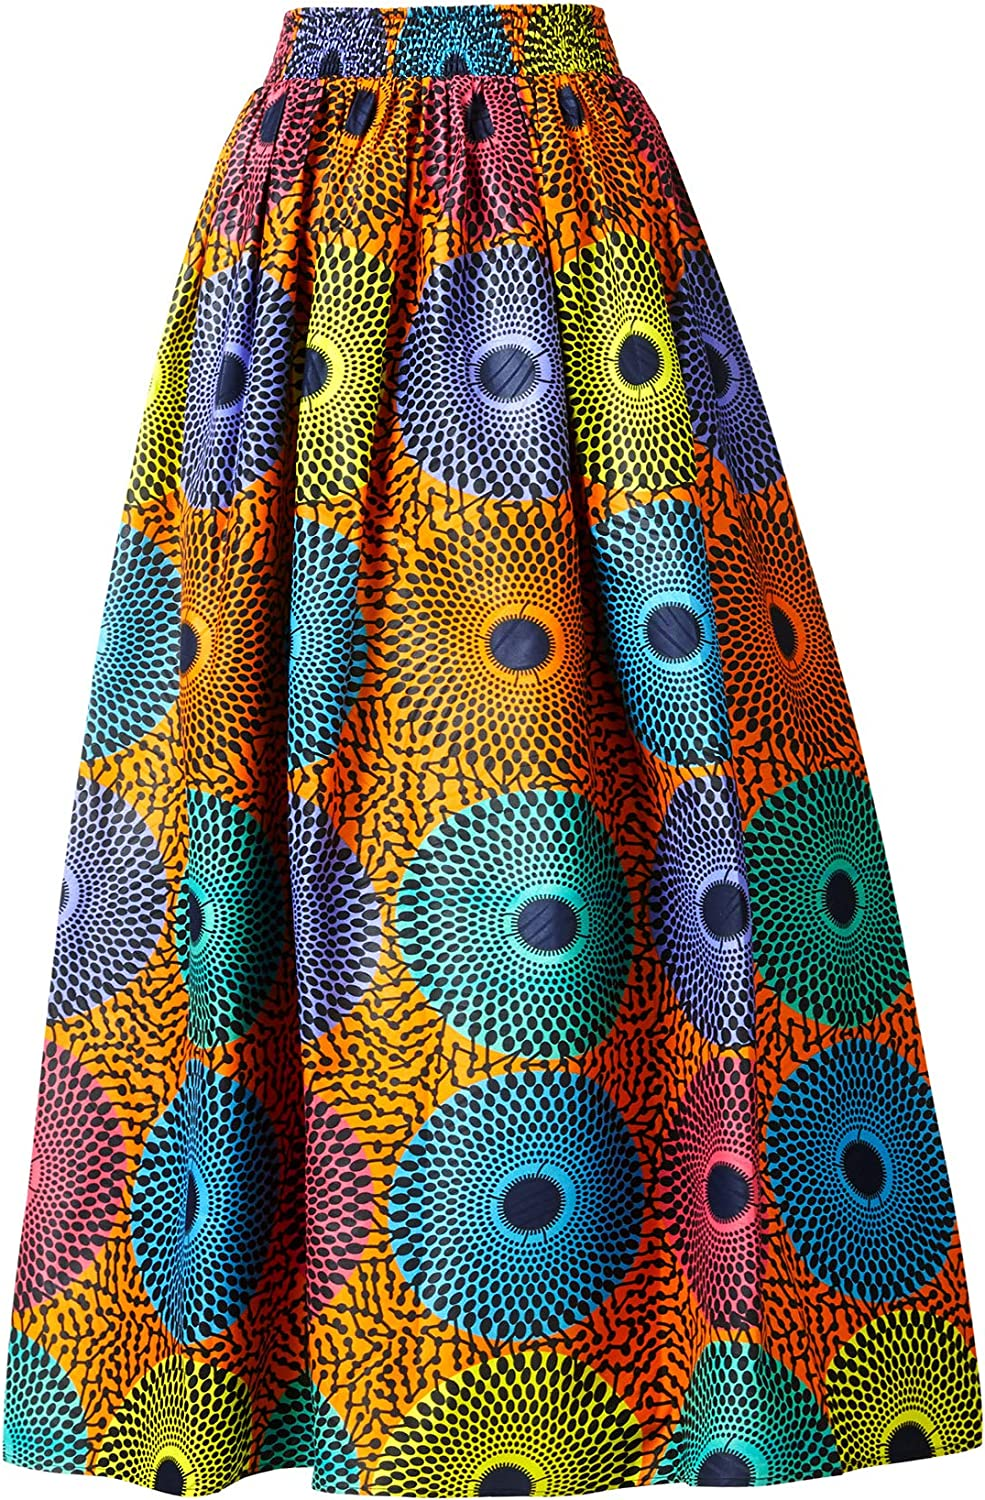 Women African Traditional Costume Ankara Print Skirt Dashiki Long Skirts